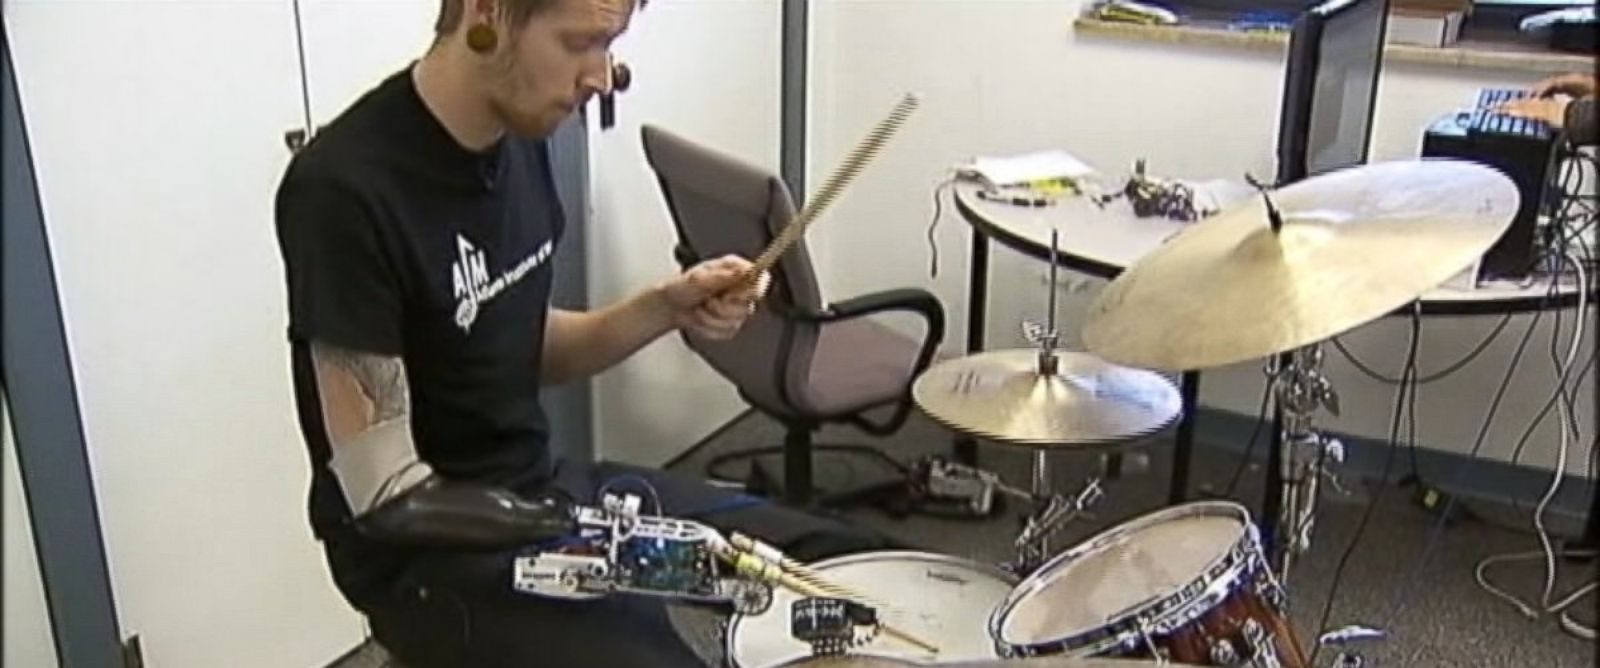 PHOTO: With the help of an advanced prosthetic, drummer Jason Barnes is getting a second chance to play the music he loves.